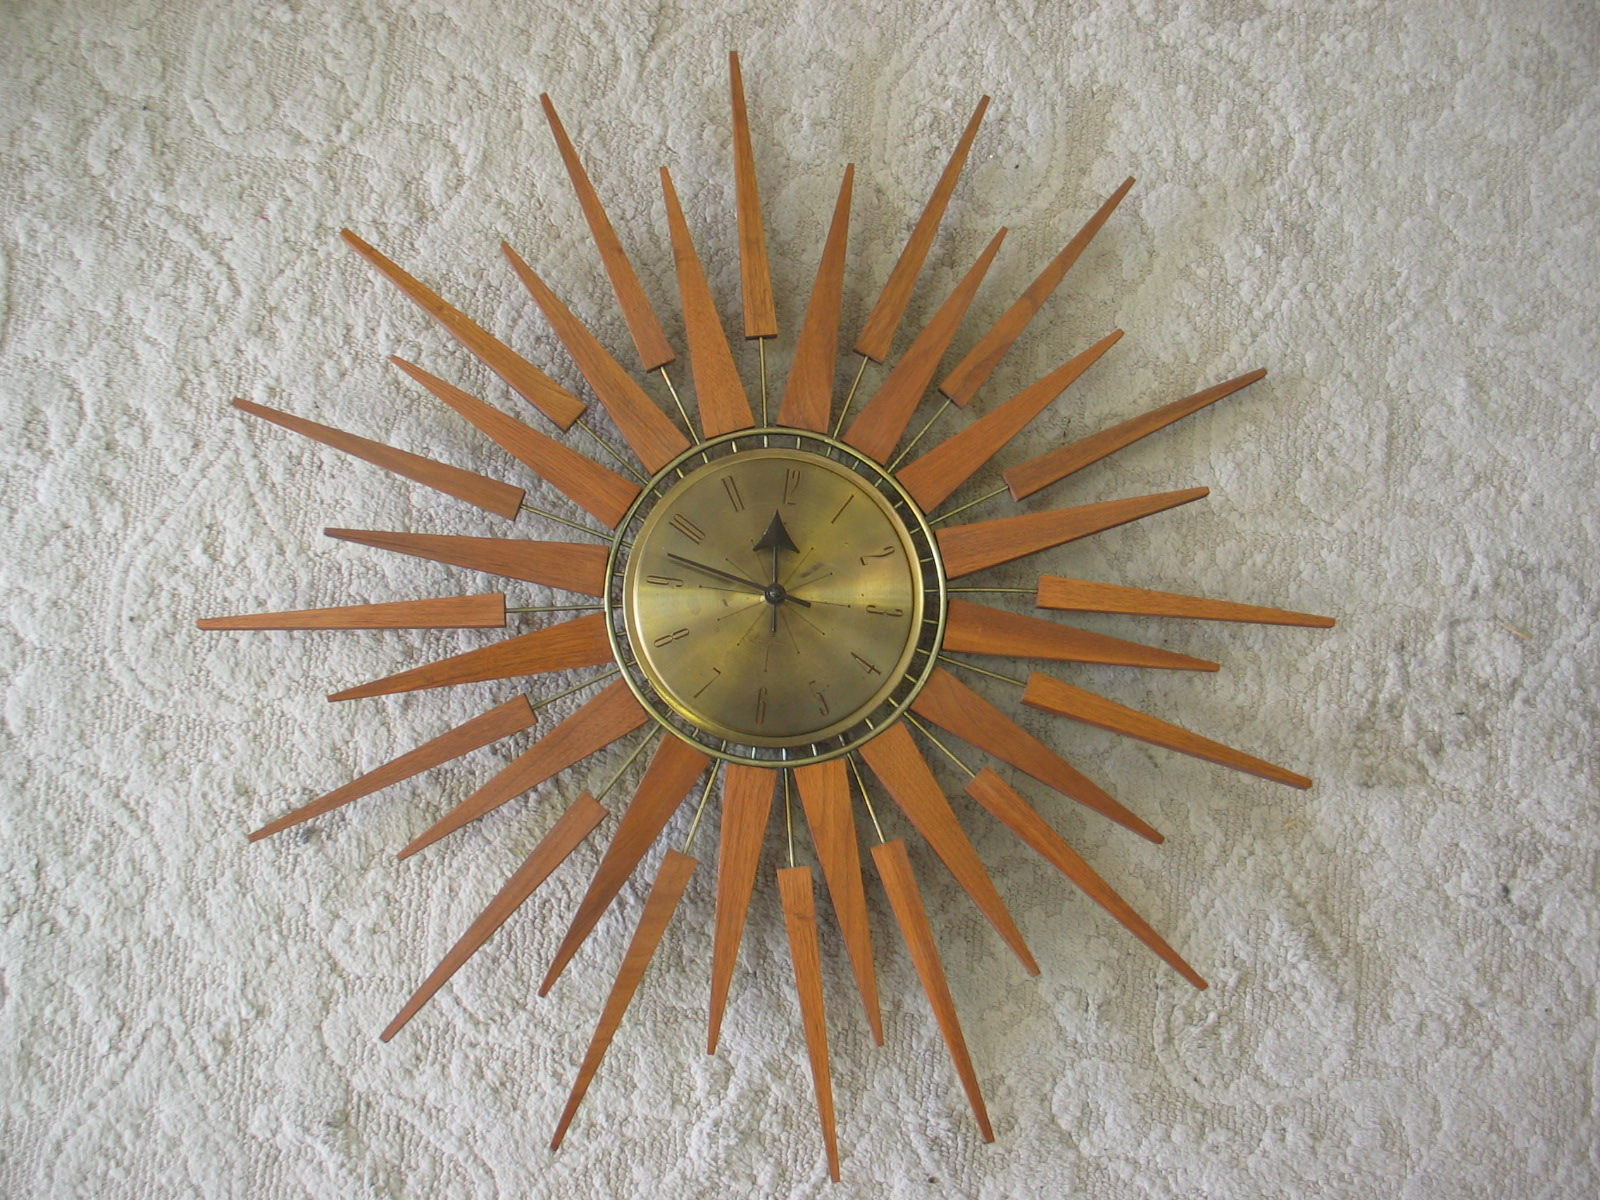 daveu0027s mid century stuff seth thomas sunburst or is it starburst clock